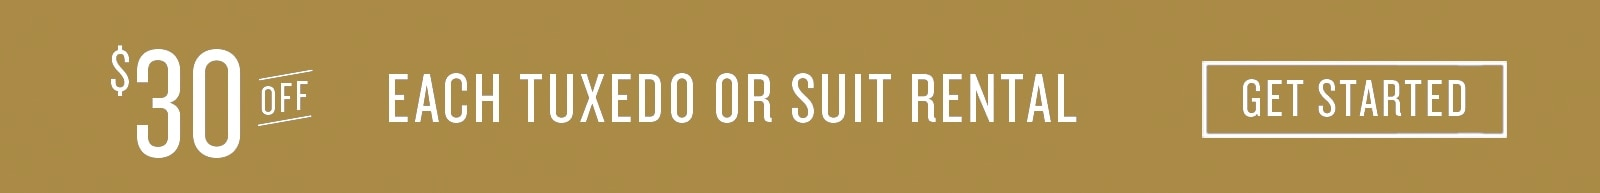 $40 Off Each Tuxedo or Suit Rental. Click to get started.